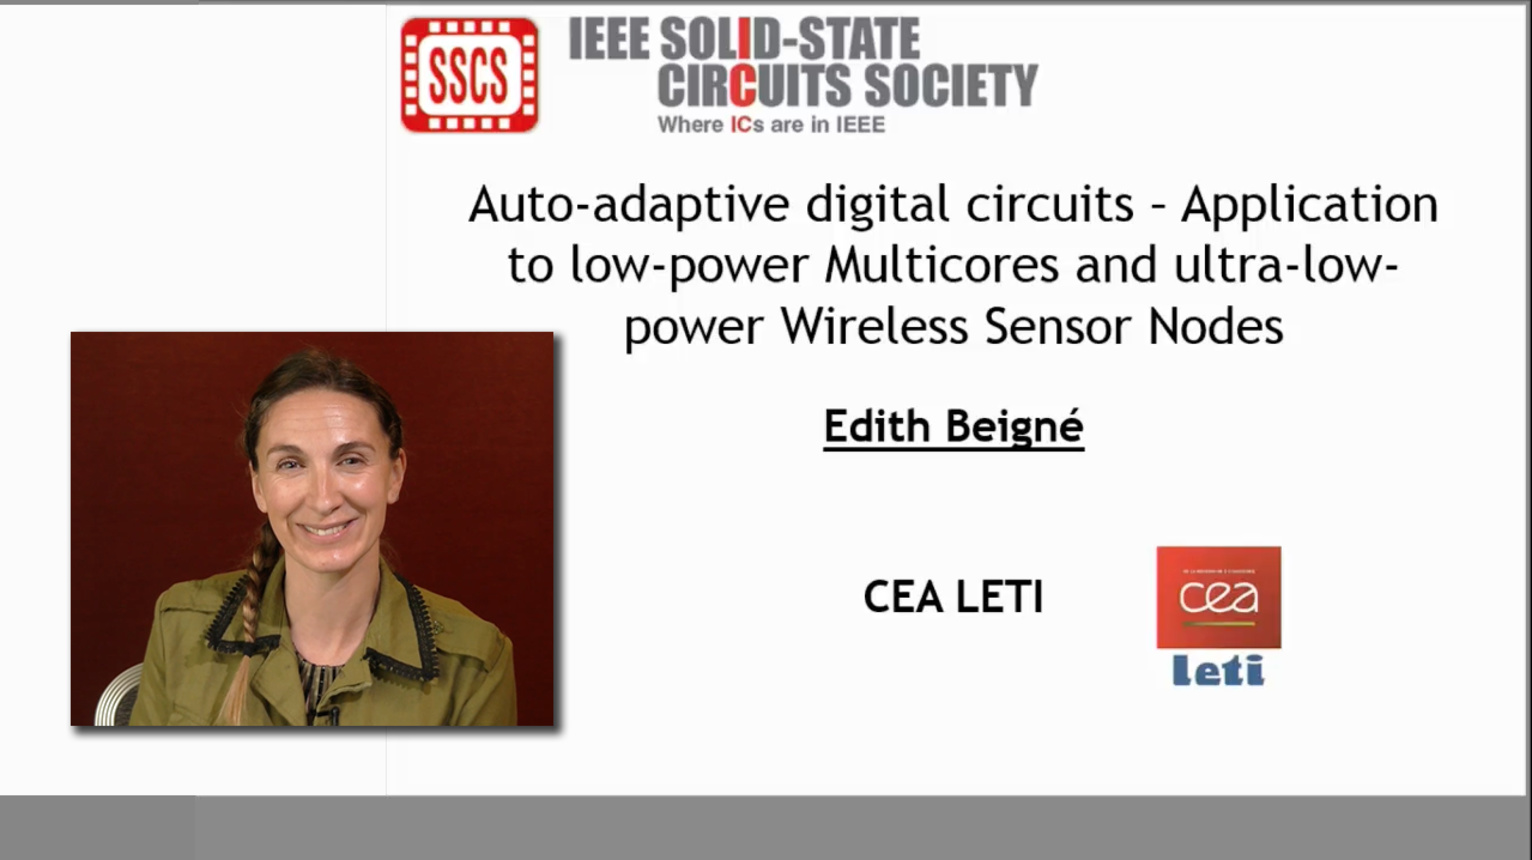 Auto-adaptive digital circuits: Application to low-power Multicores and ultra-low-power Wireless Sensor Nodes Video